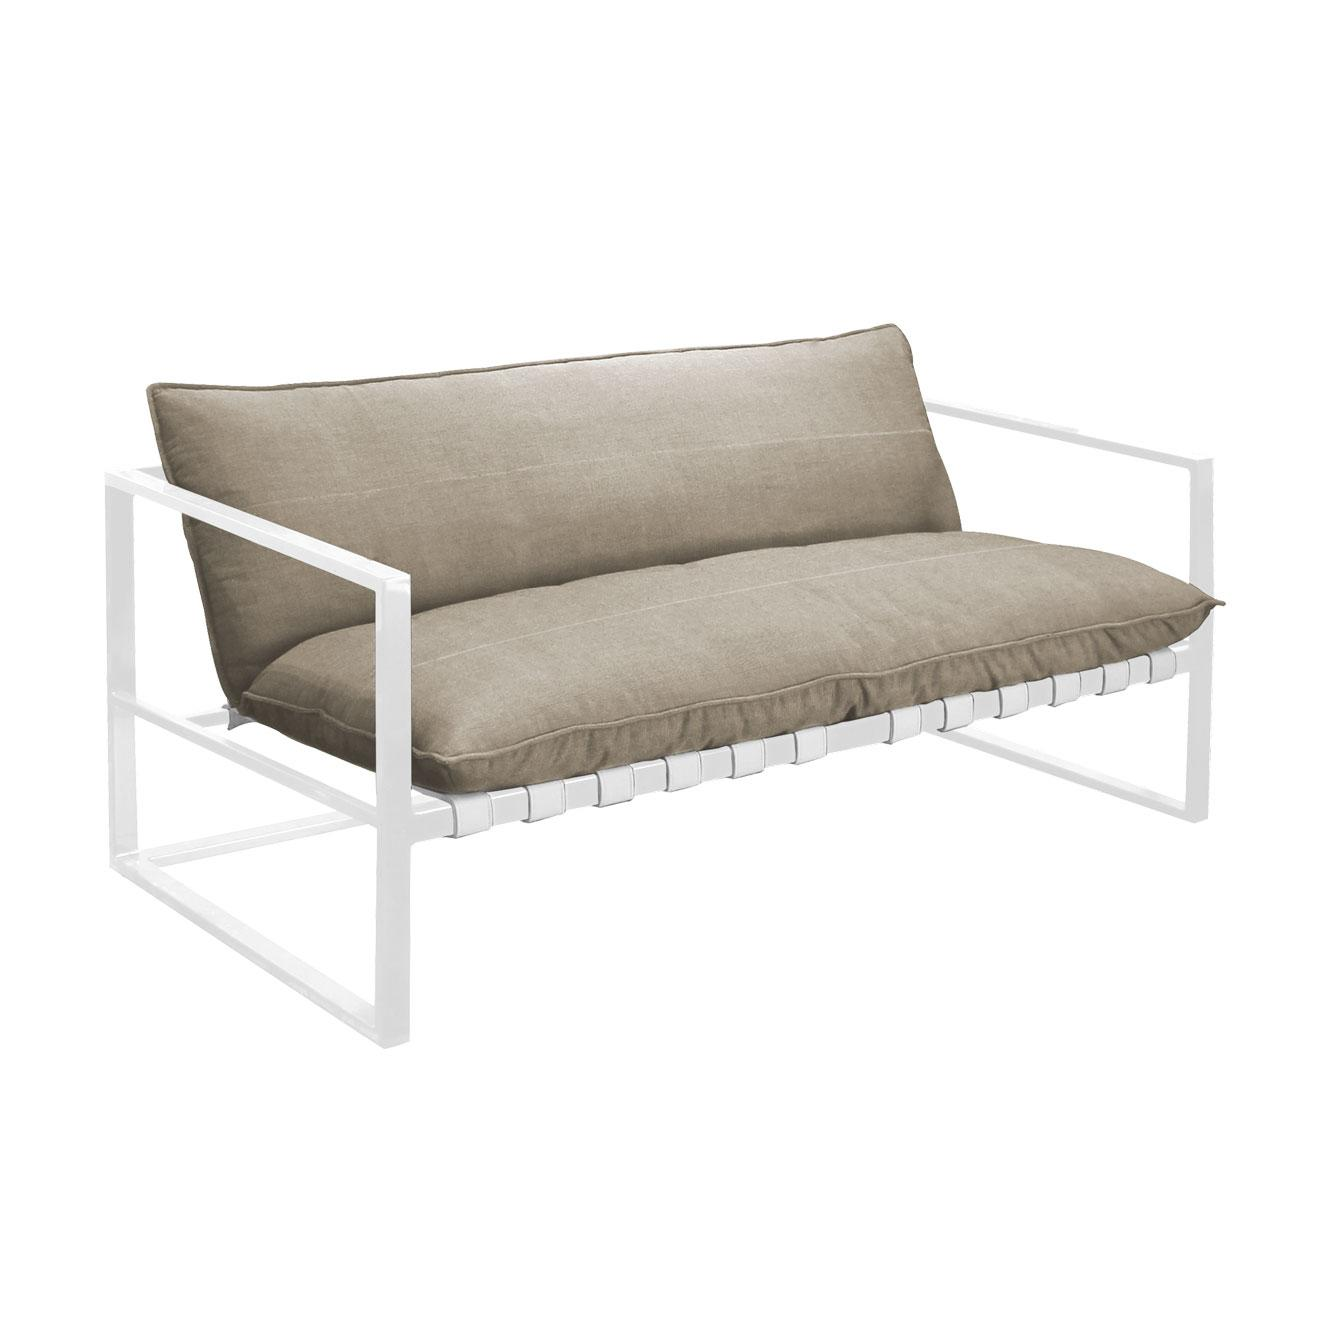 white and stone 2 seater garden sofa in aluminium and all weather fabric